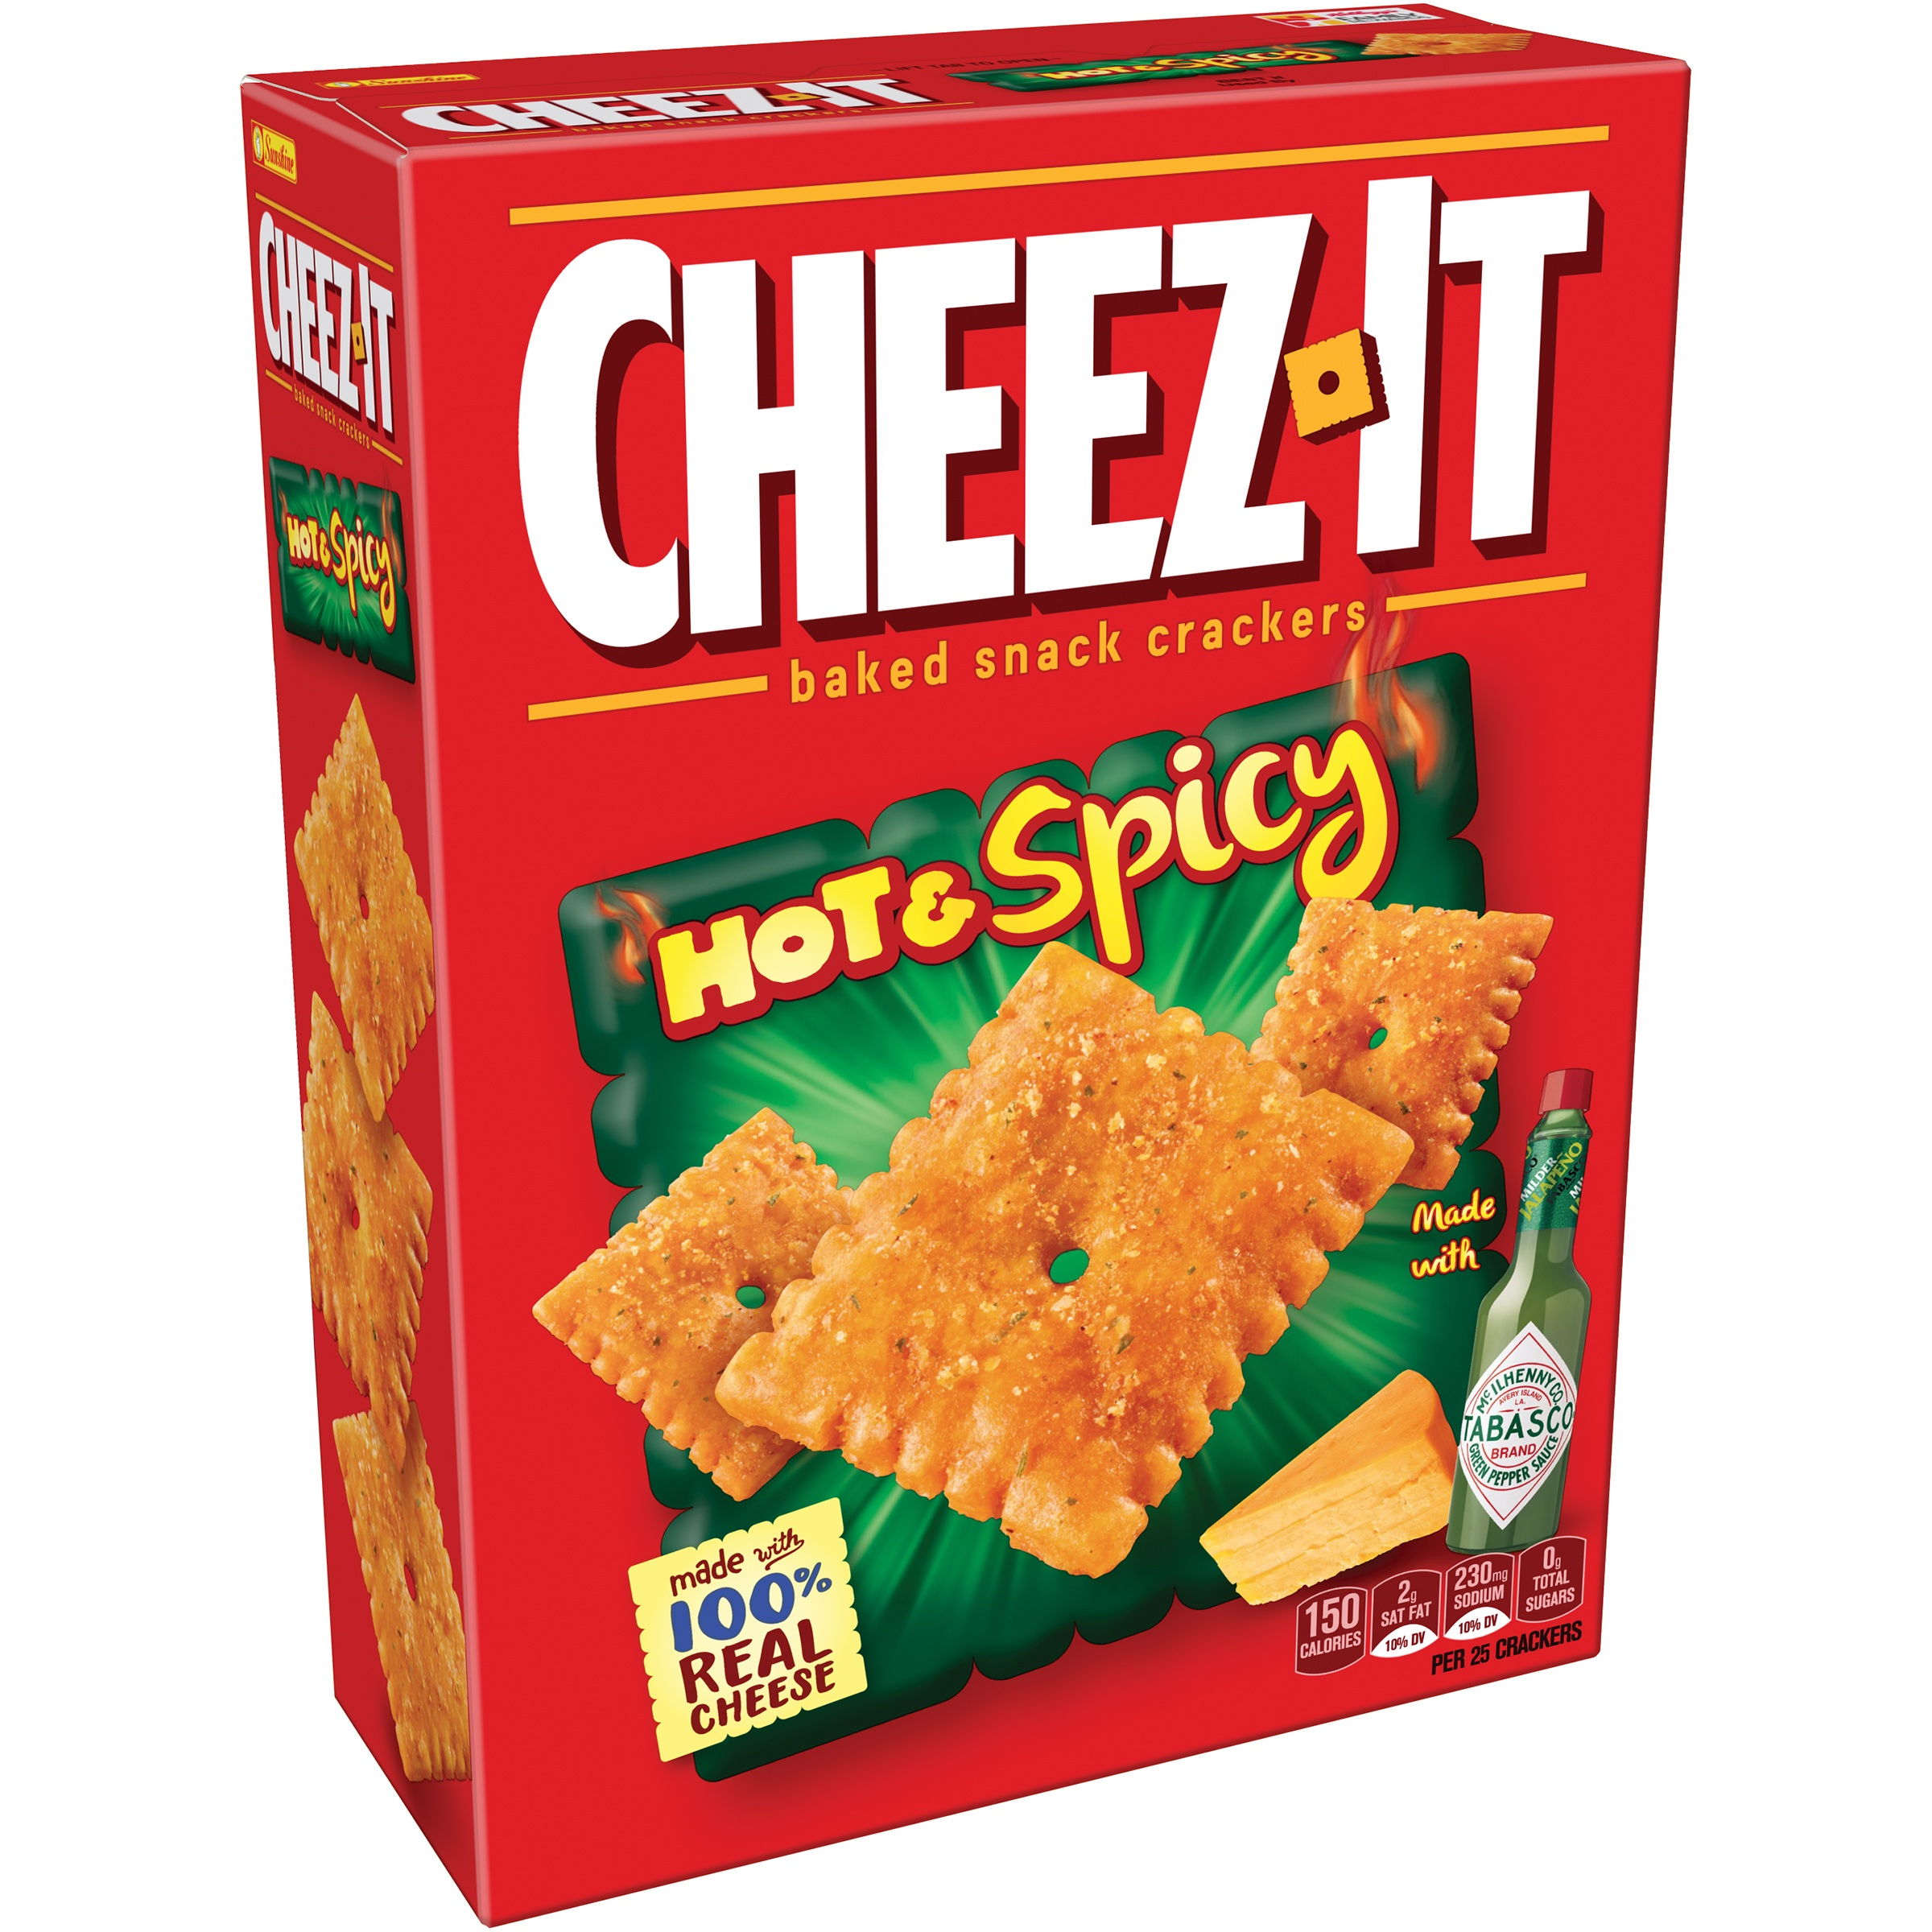 (2 Pack) Cheez-It Hot & Spicy Baked Snack Crackers 12.4 oz. Box